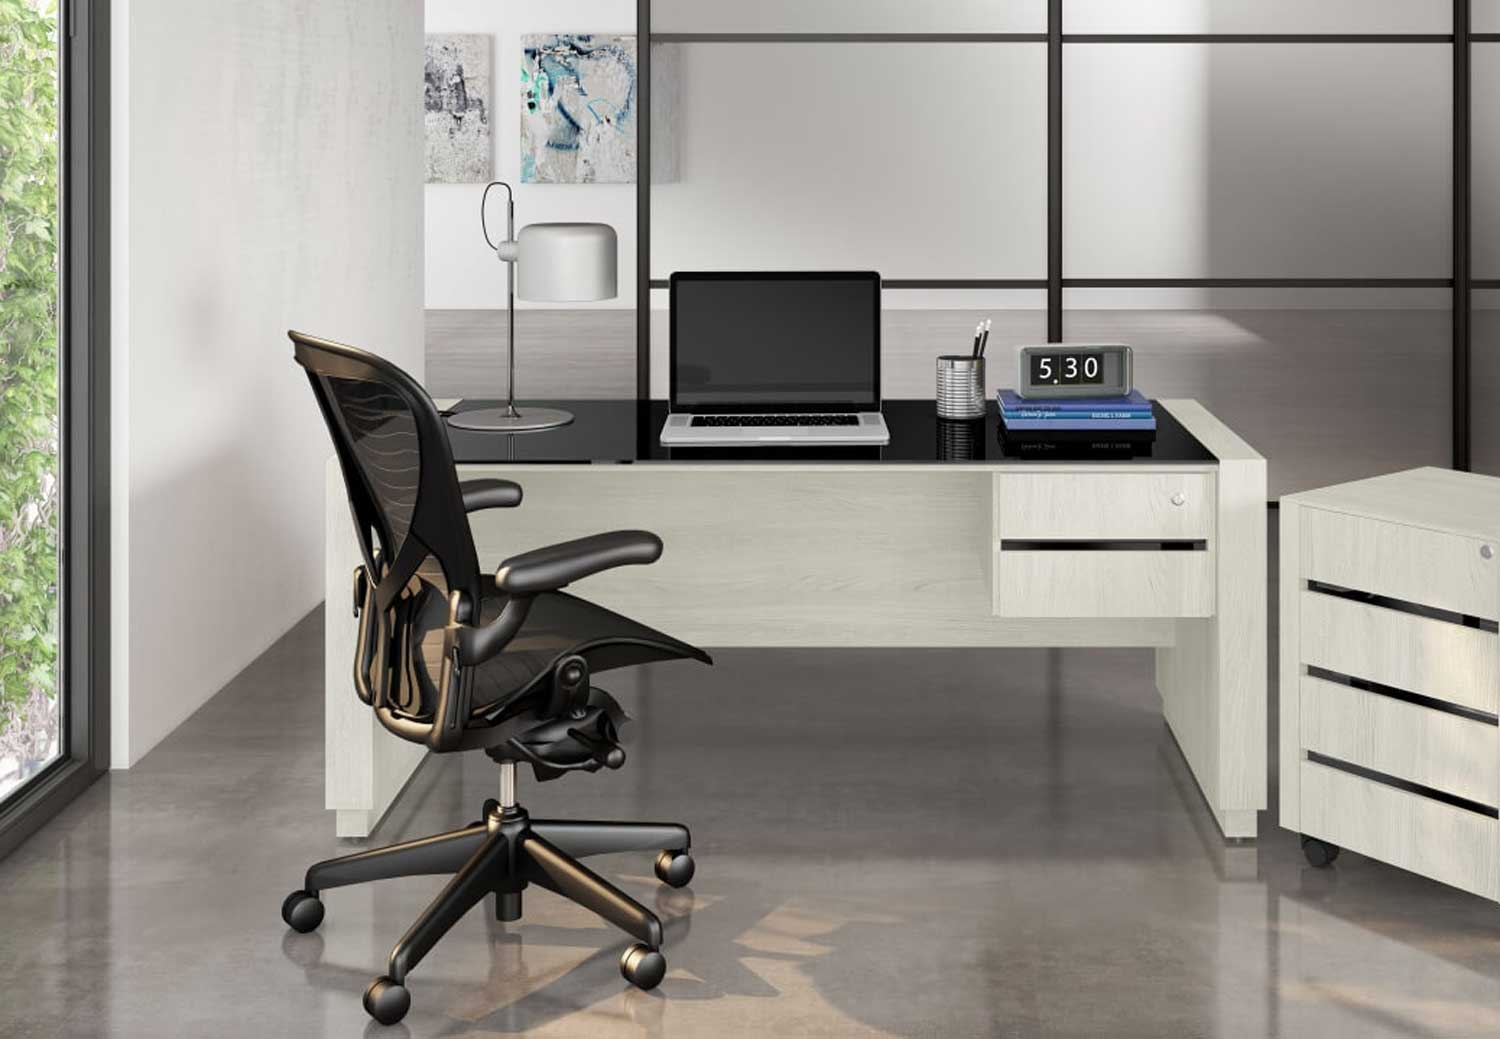 Surprising The 12 Best Office Chairs Under 300 Improb Short Links Chair Design For Home Short Linksinfo